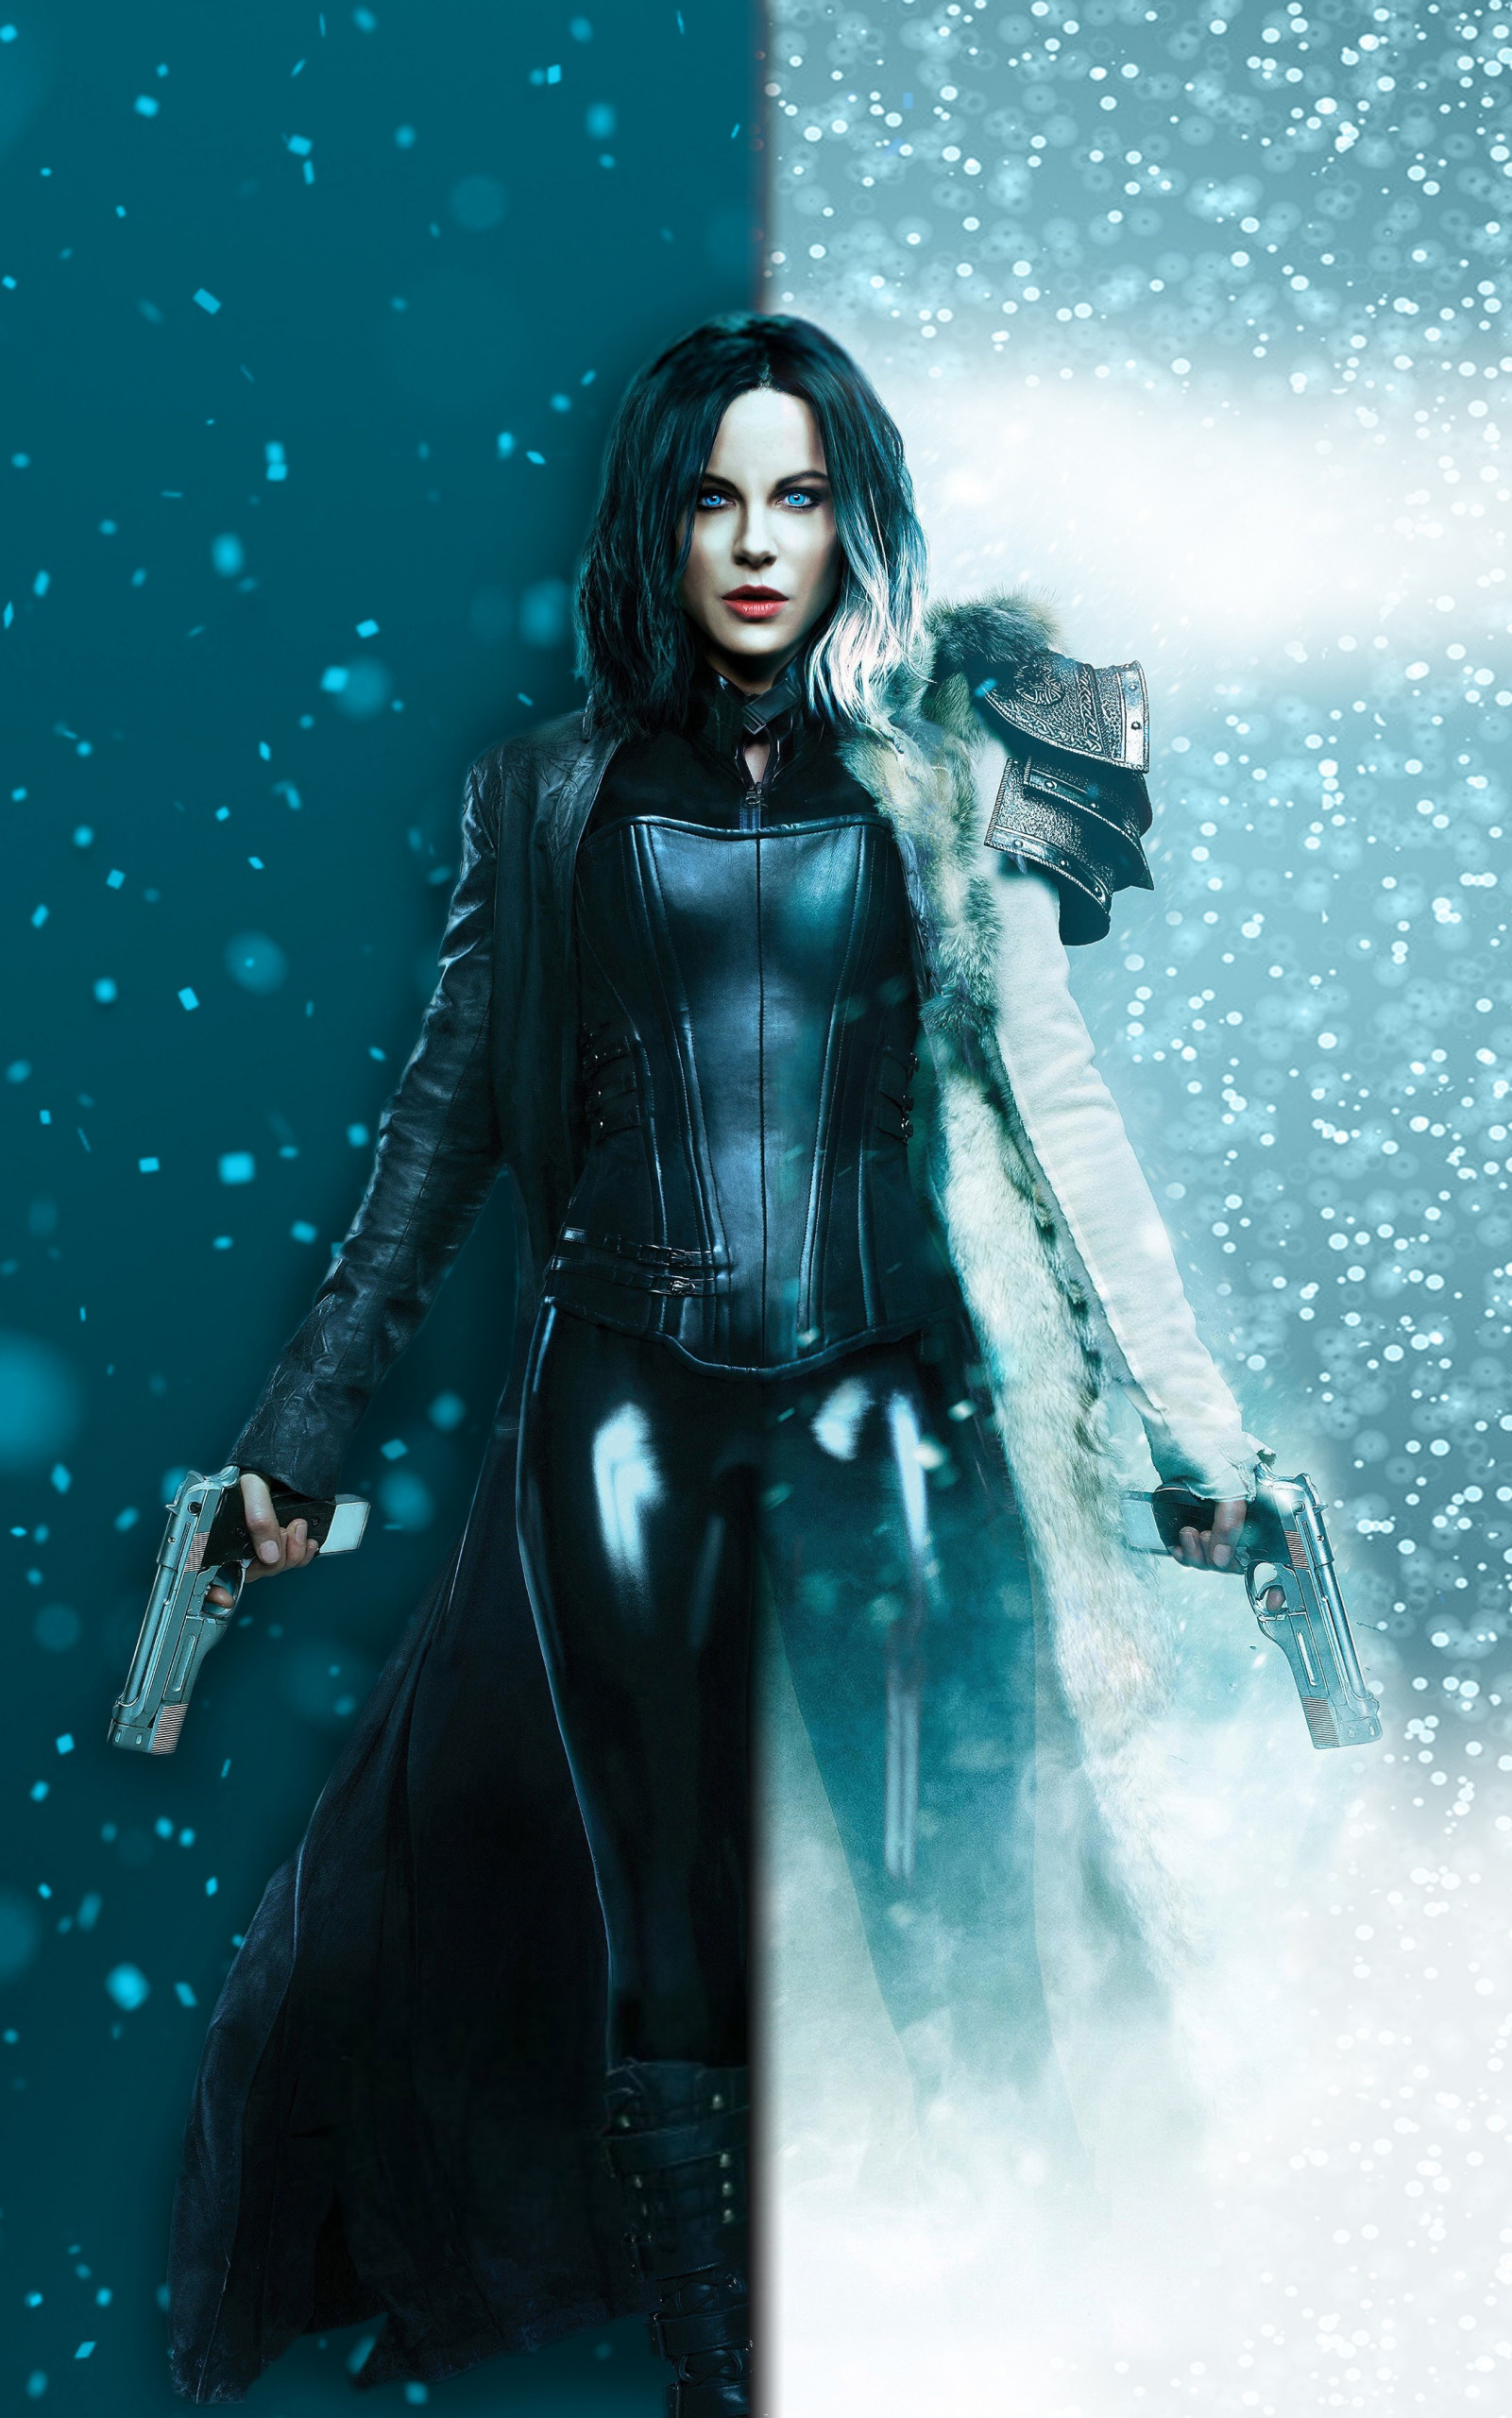 Pictures of selene from underworld Underworld: Blood Wars Sony Pictures